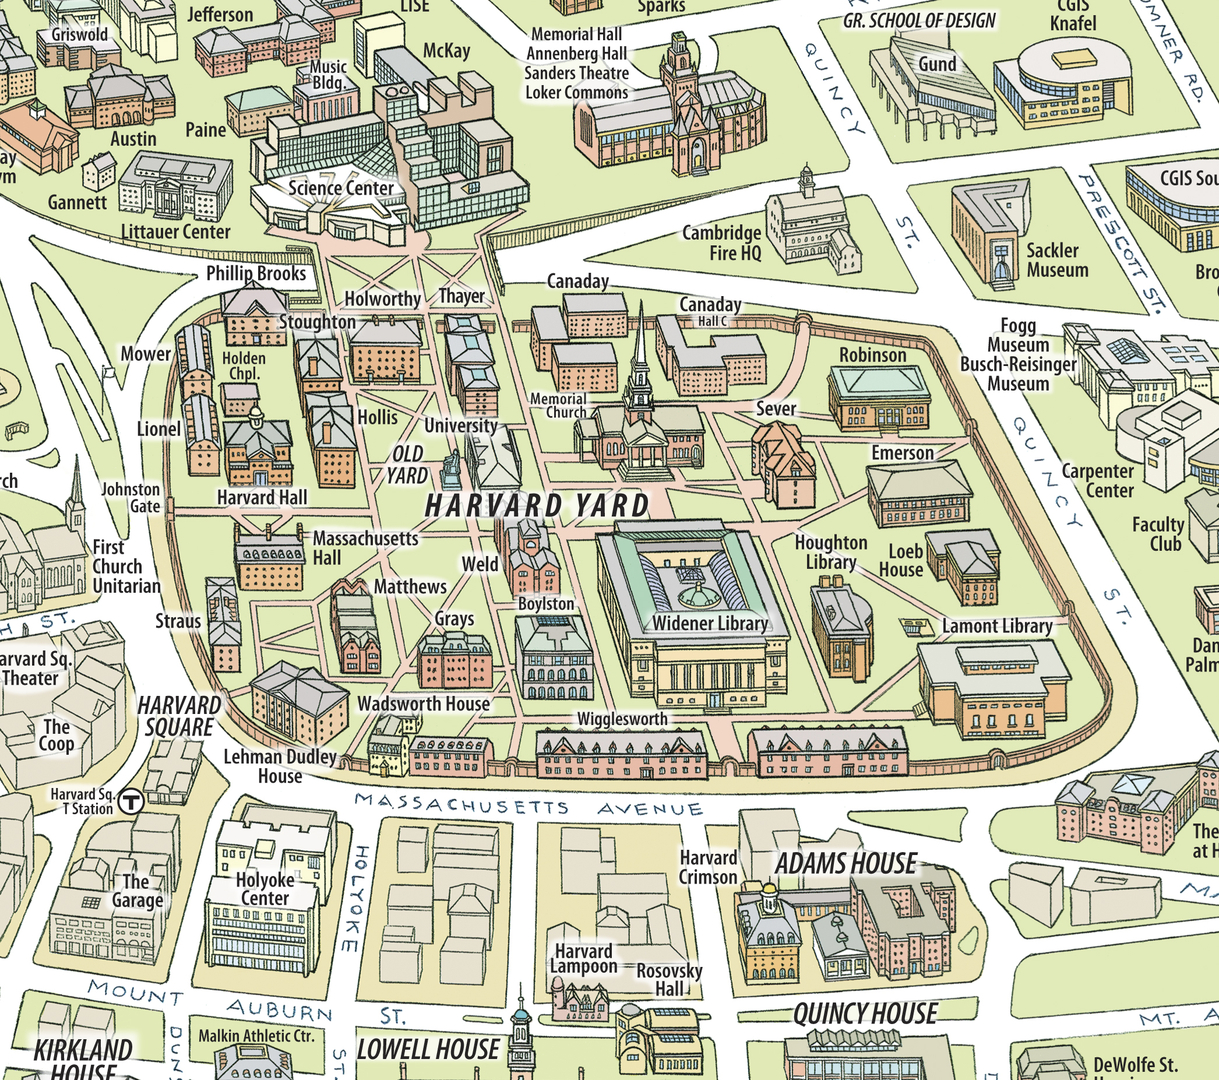 South Texas College Campus Map.Campus Maps